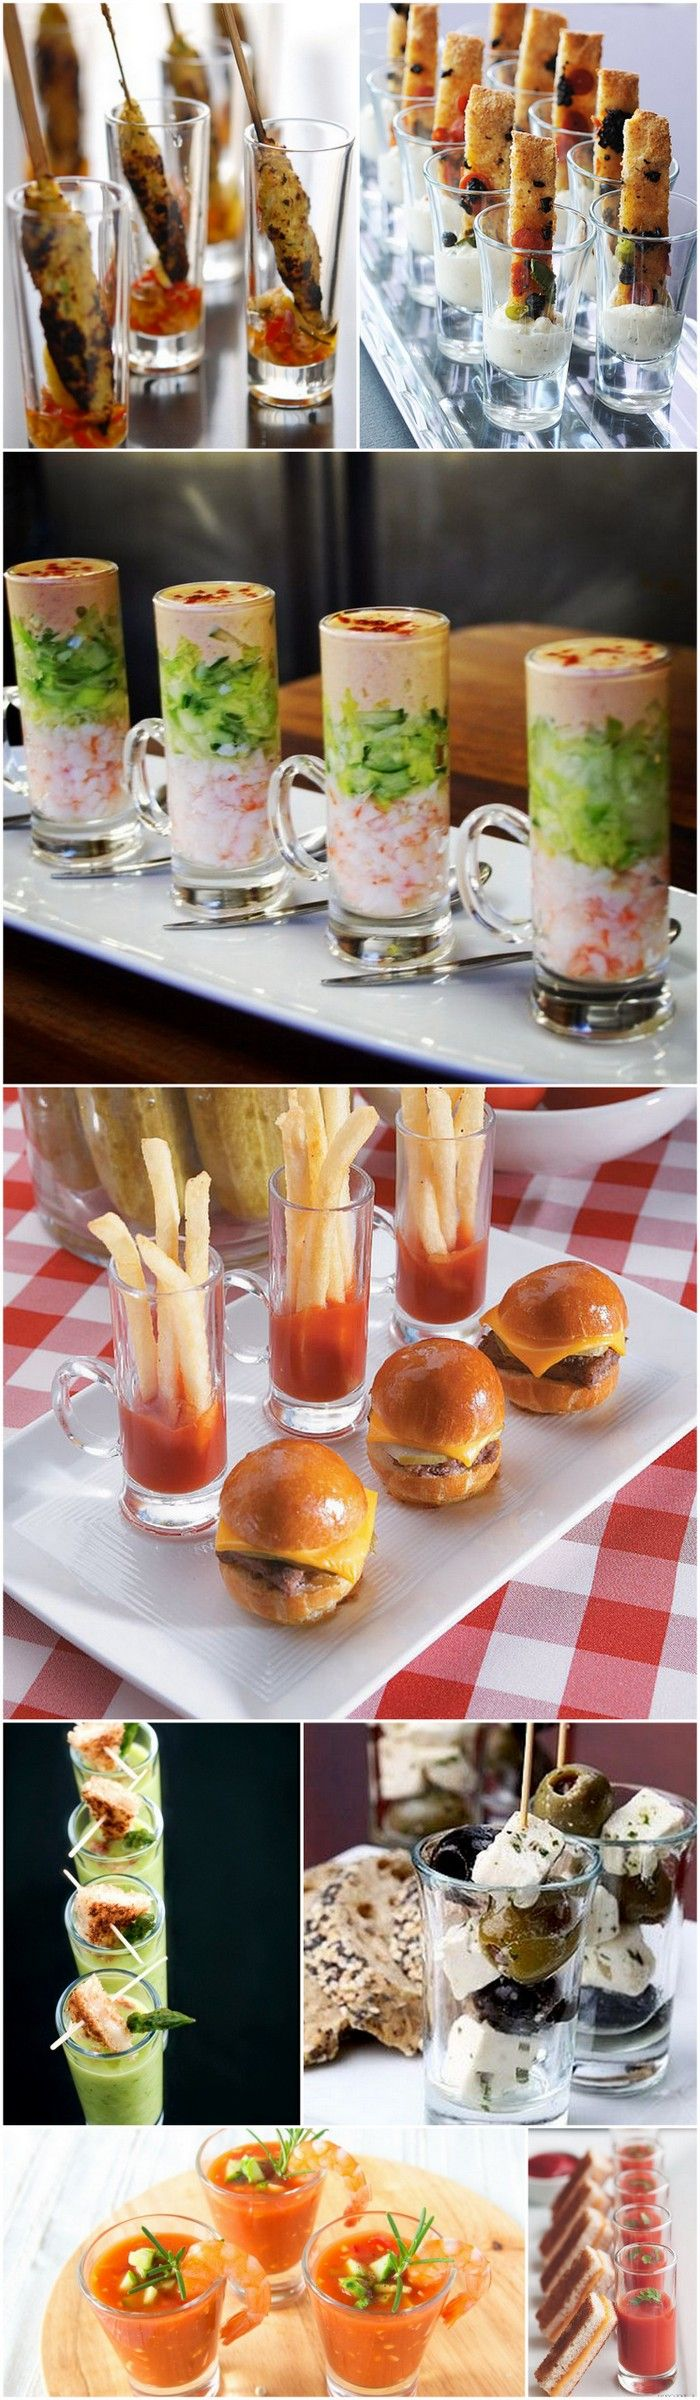 25 best ideas about party canapes on pinterest canape ForParty Canape Ideas